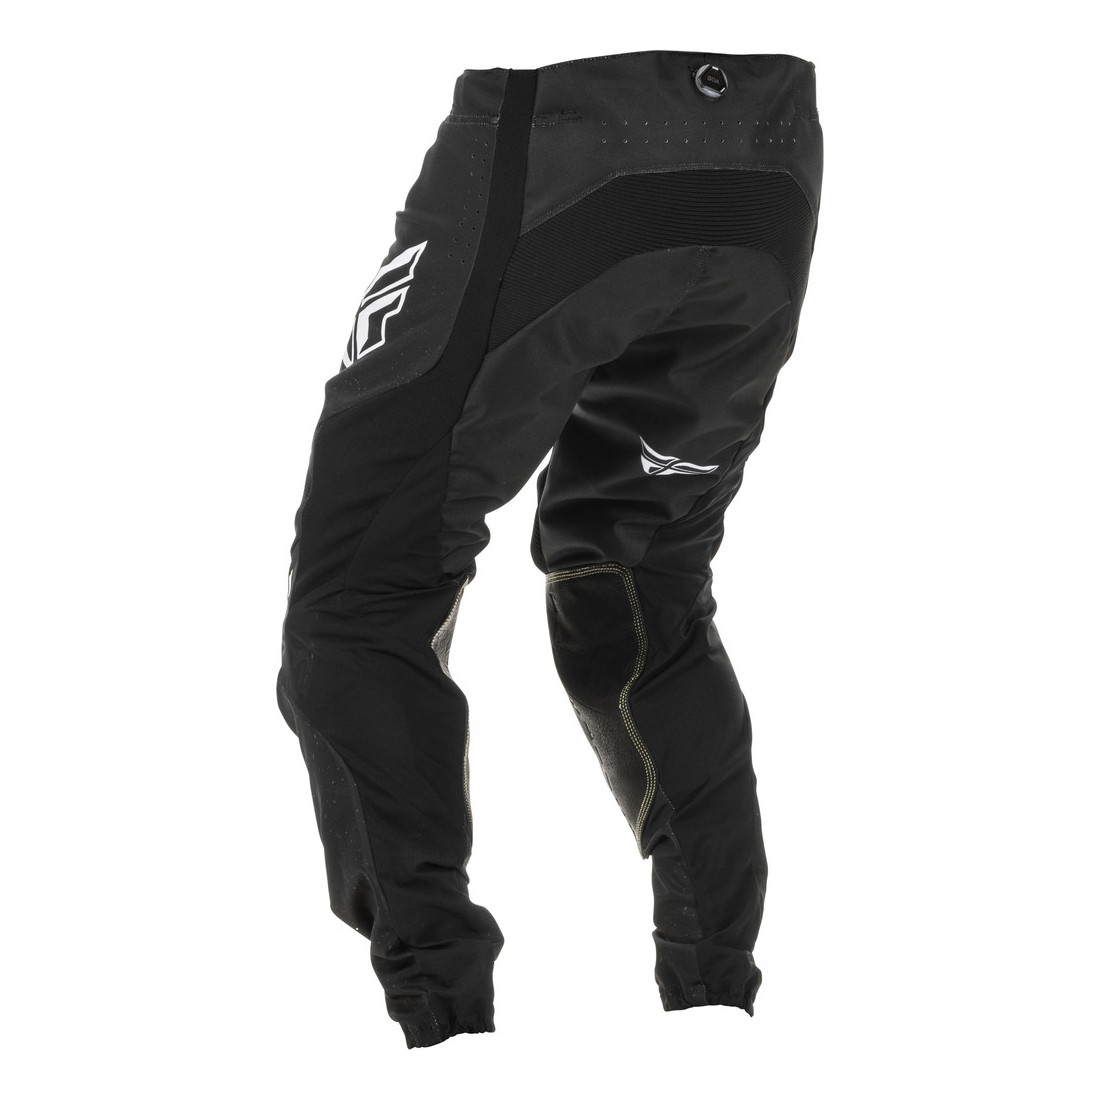 FLY LITE 2020 PANTS